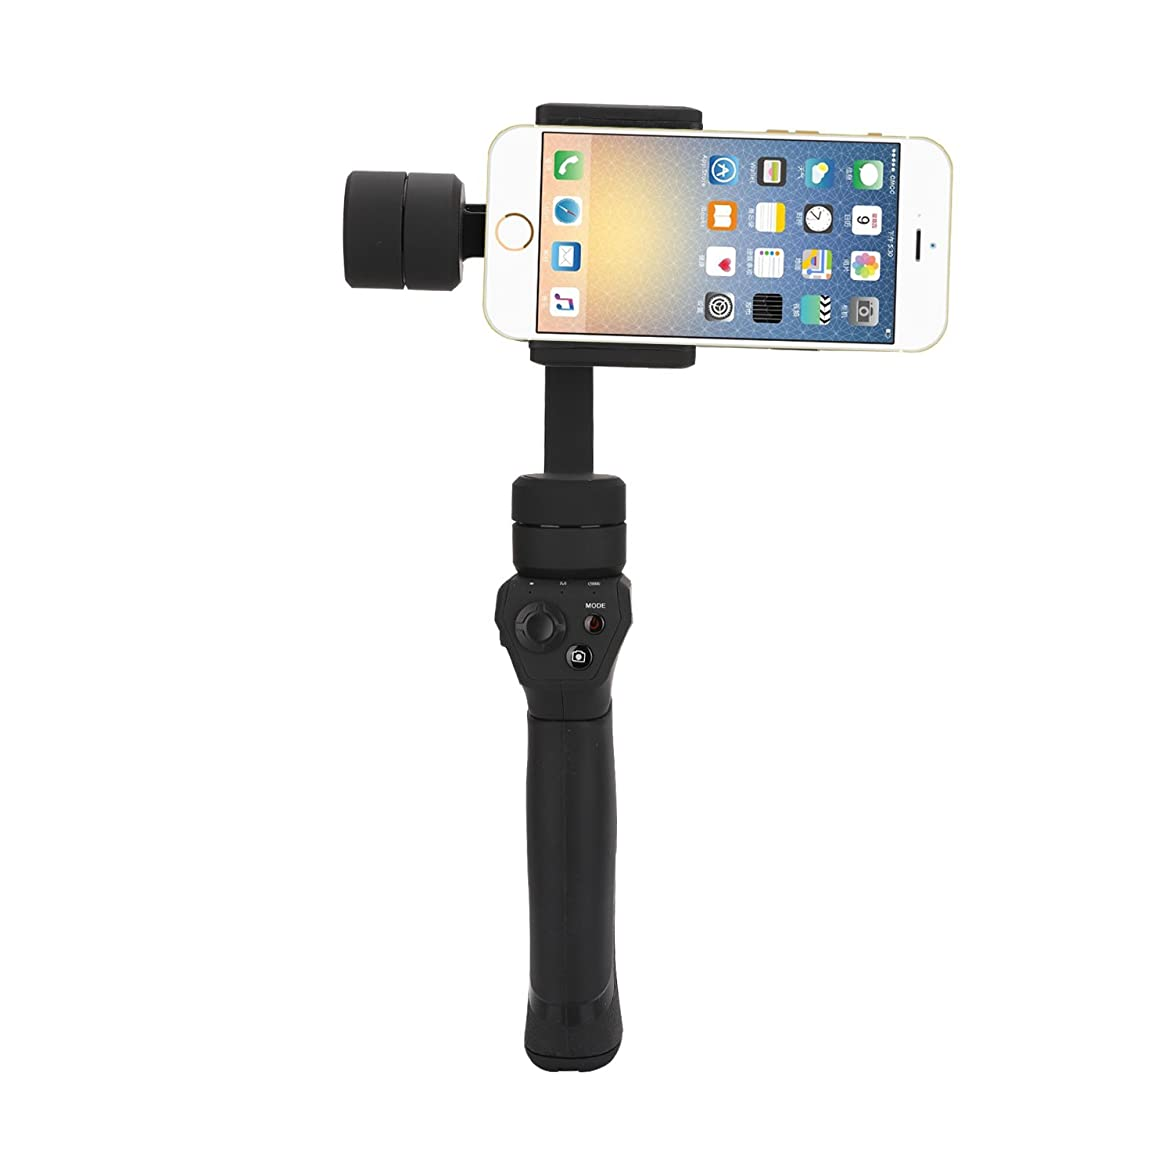 eloam 3-Axis Gimbal Stabilizer Panorama Shooting for Camera Smartphone like Gopro Dslr iPhone X 6S 7S 8 Plus Samsung Galaxy S8+ S7 S6 S5 Handheld Motorized